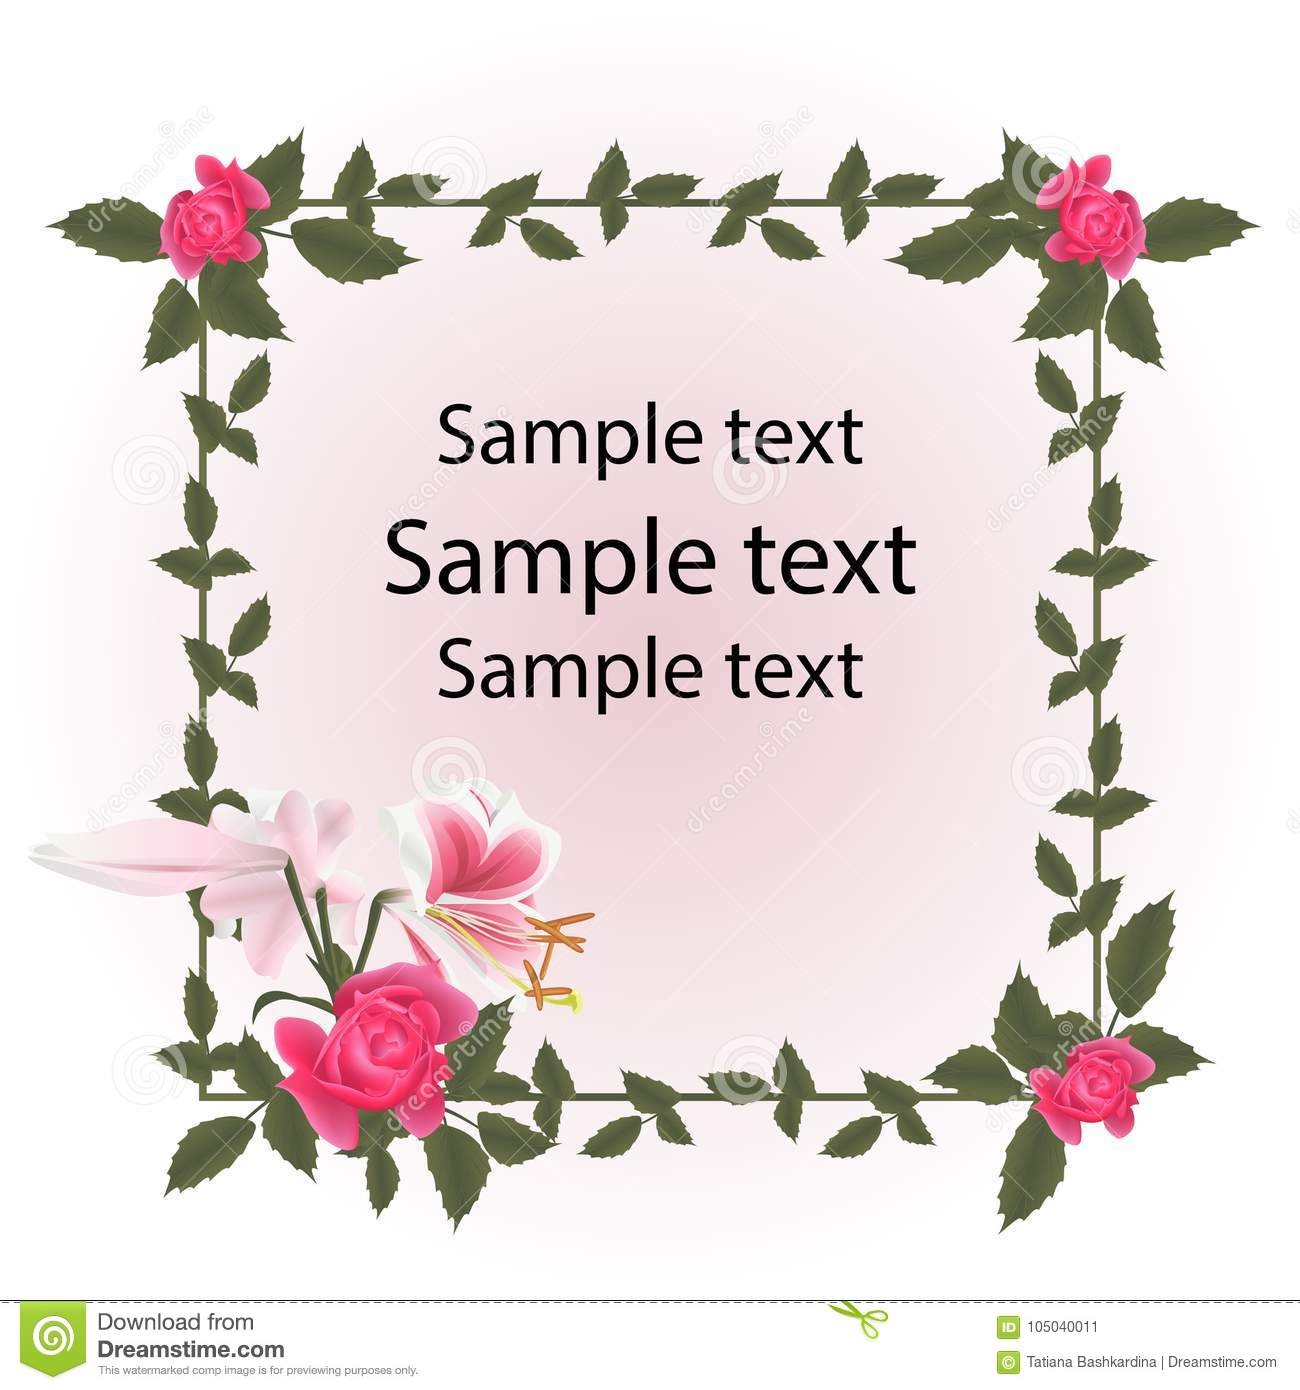 9857c940235 Red roses and lily flower are pink white. Frame of rose leaves. Free space  Sample text. Invitation design